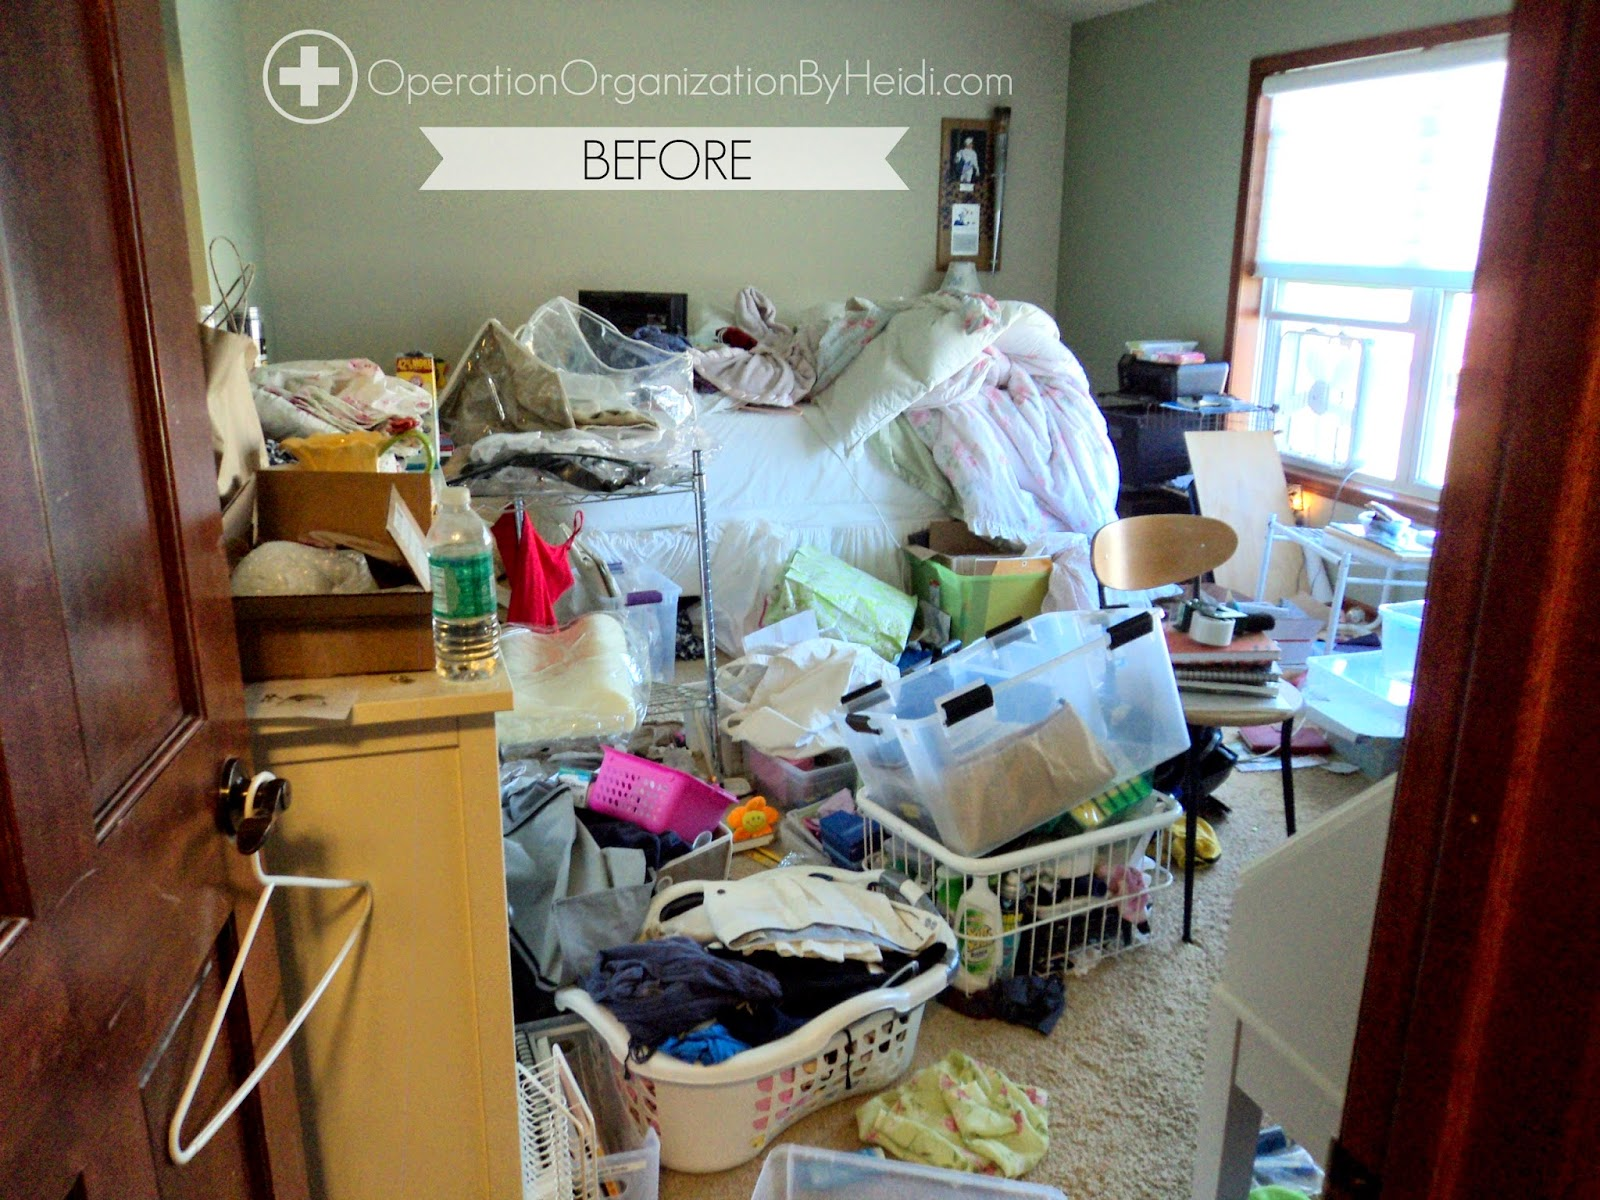 Here Is A Peek Of What Master Bedroom Looked Like Before Operation Organization By Heidi Was Called In For Aid